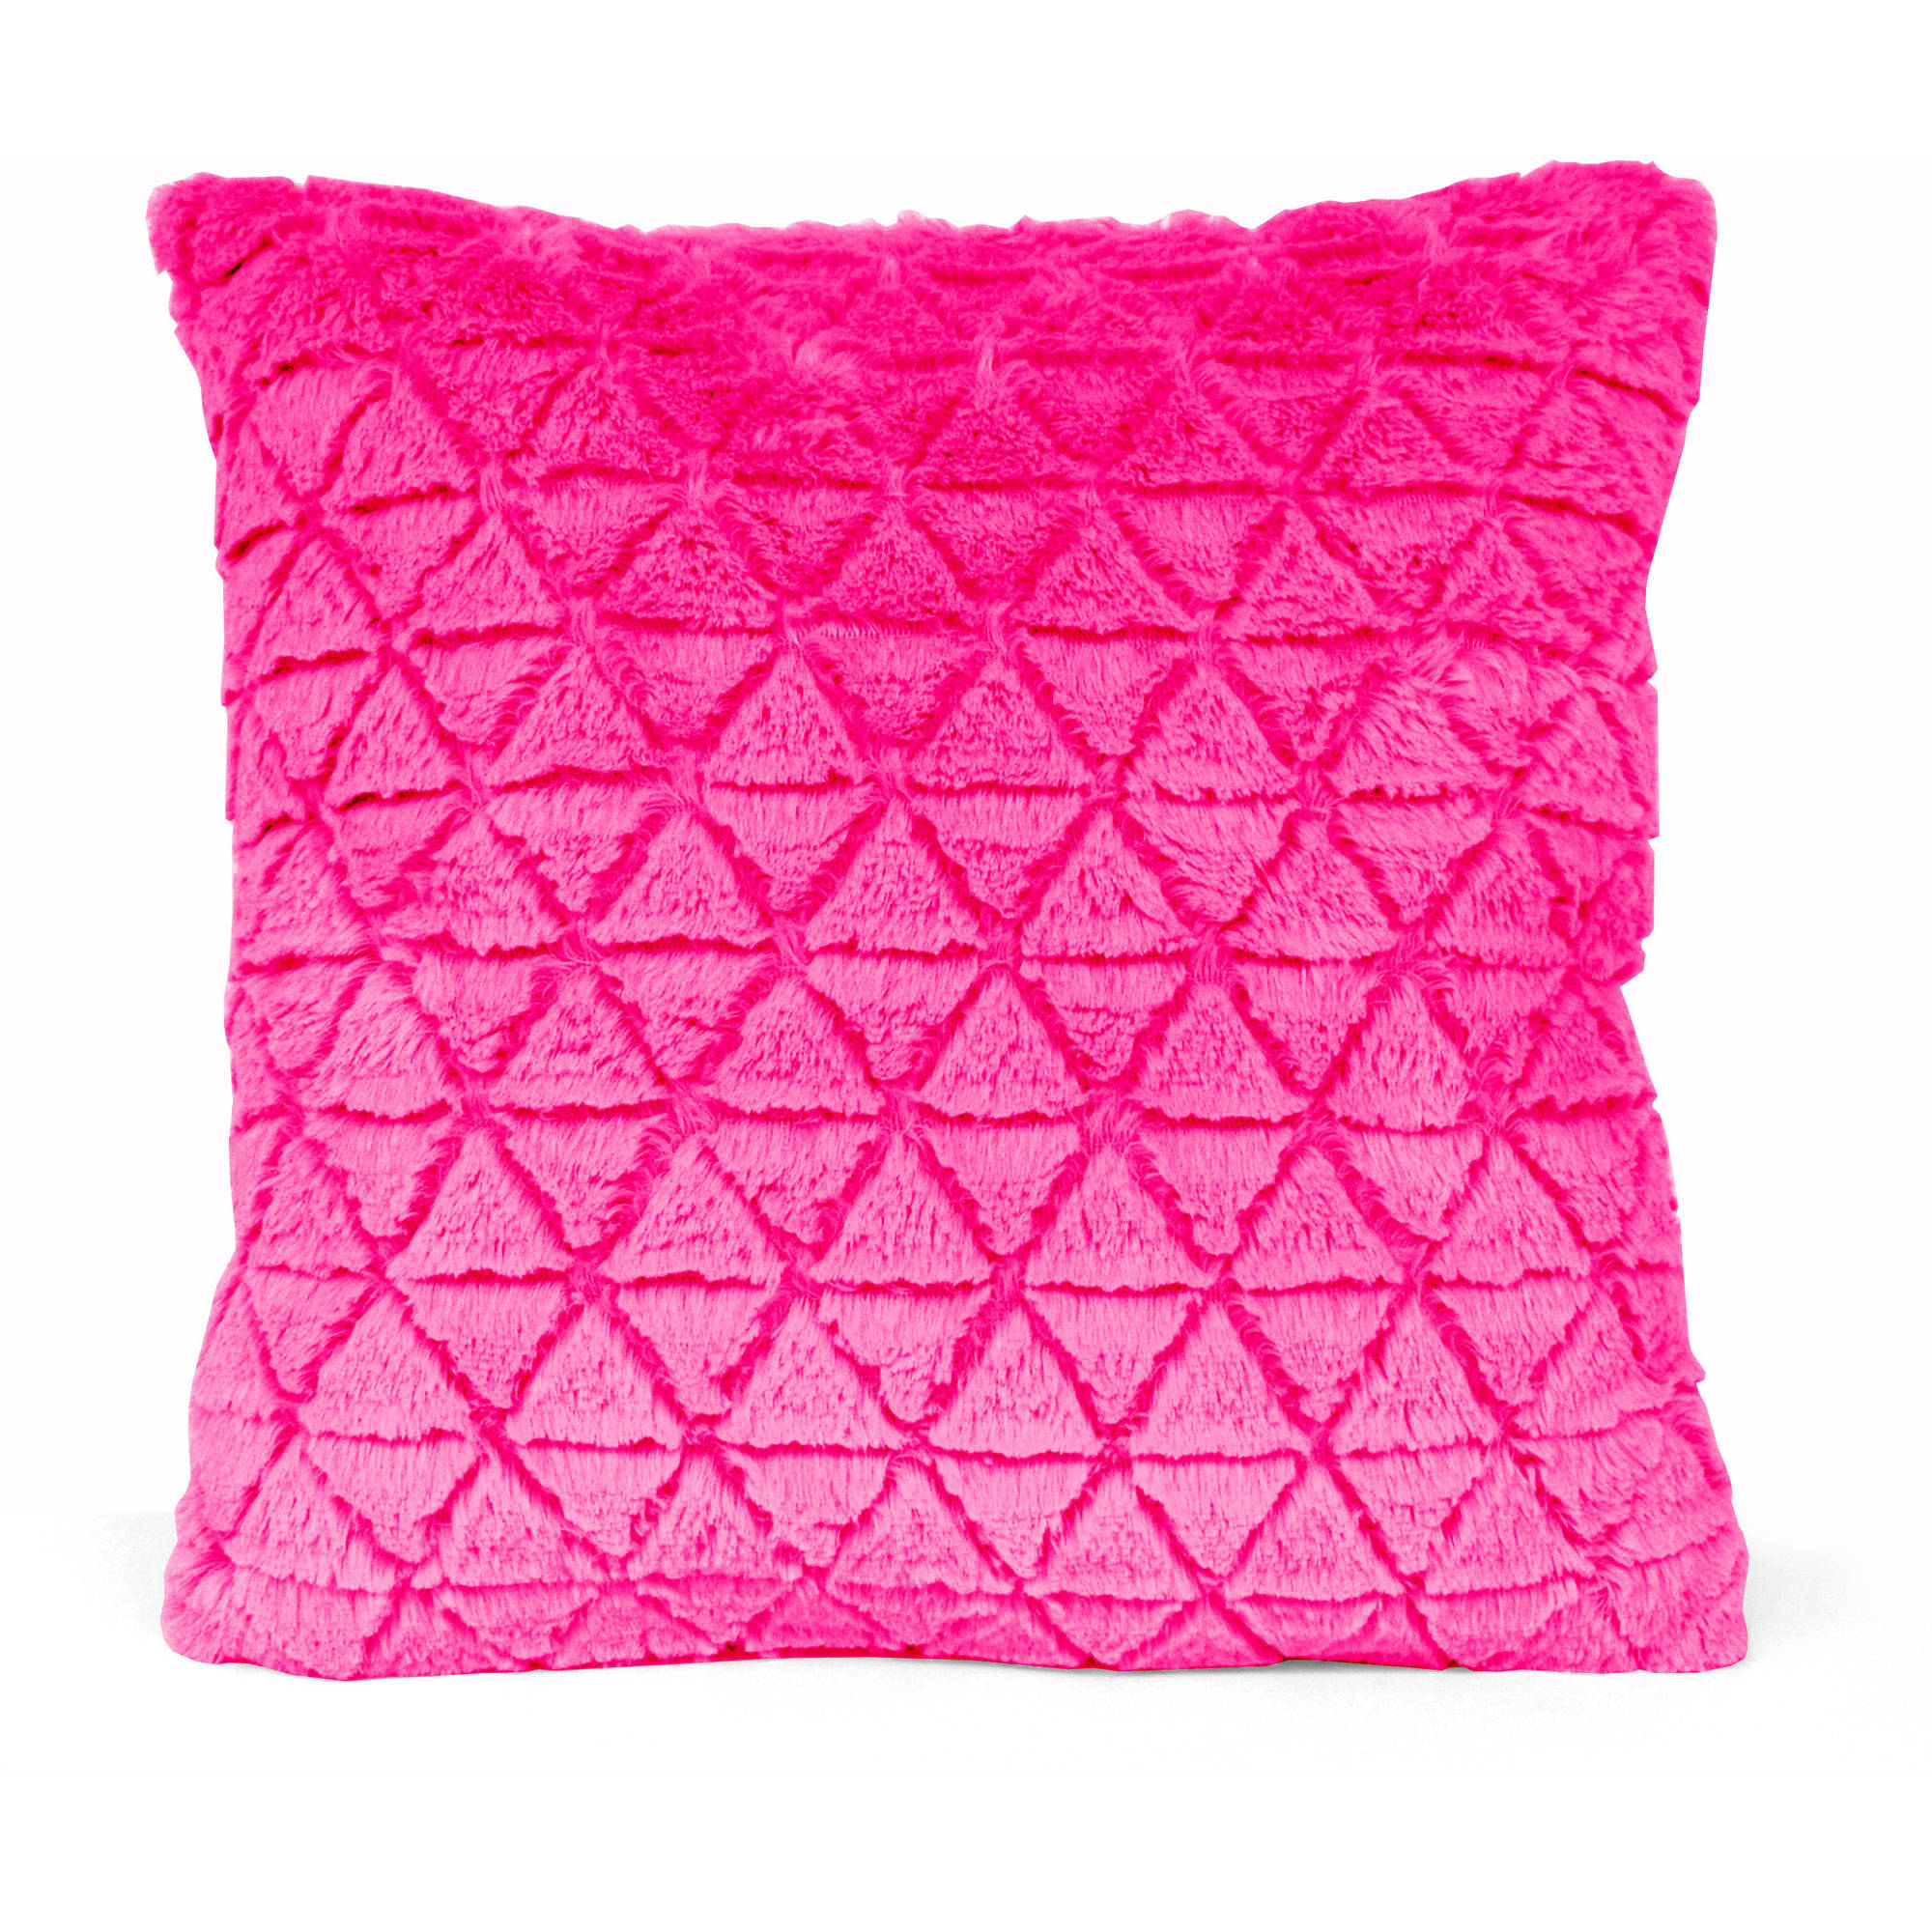 your zone triangle fur pillow, available in various colors